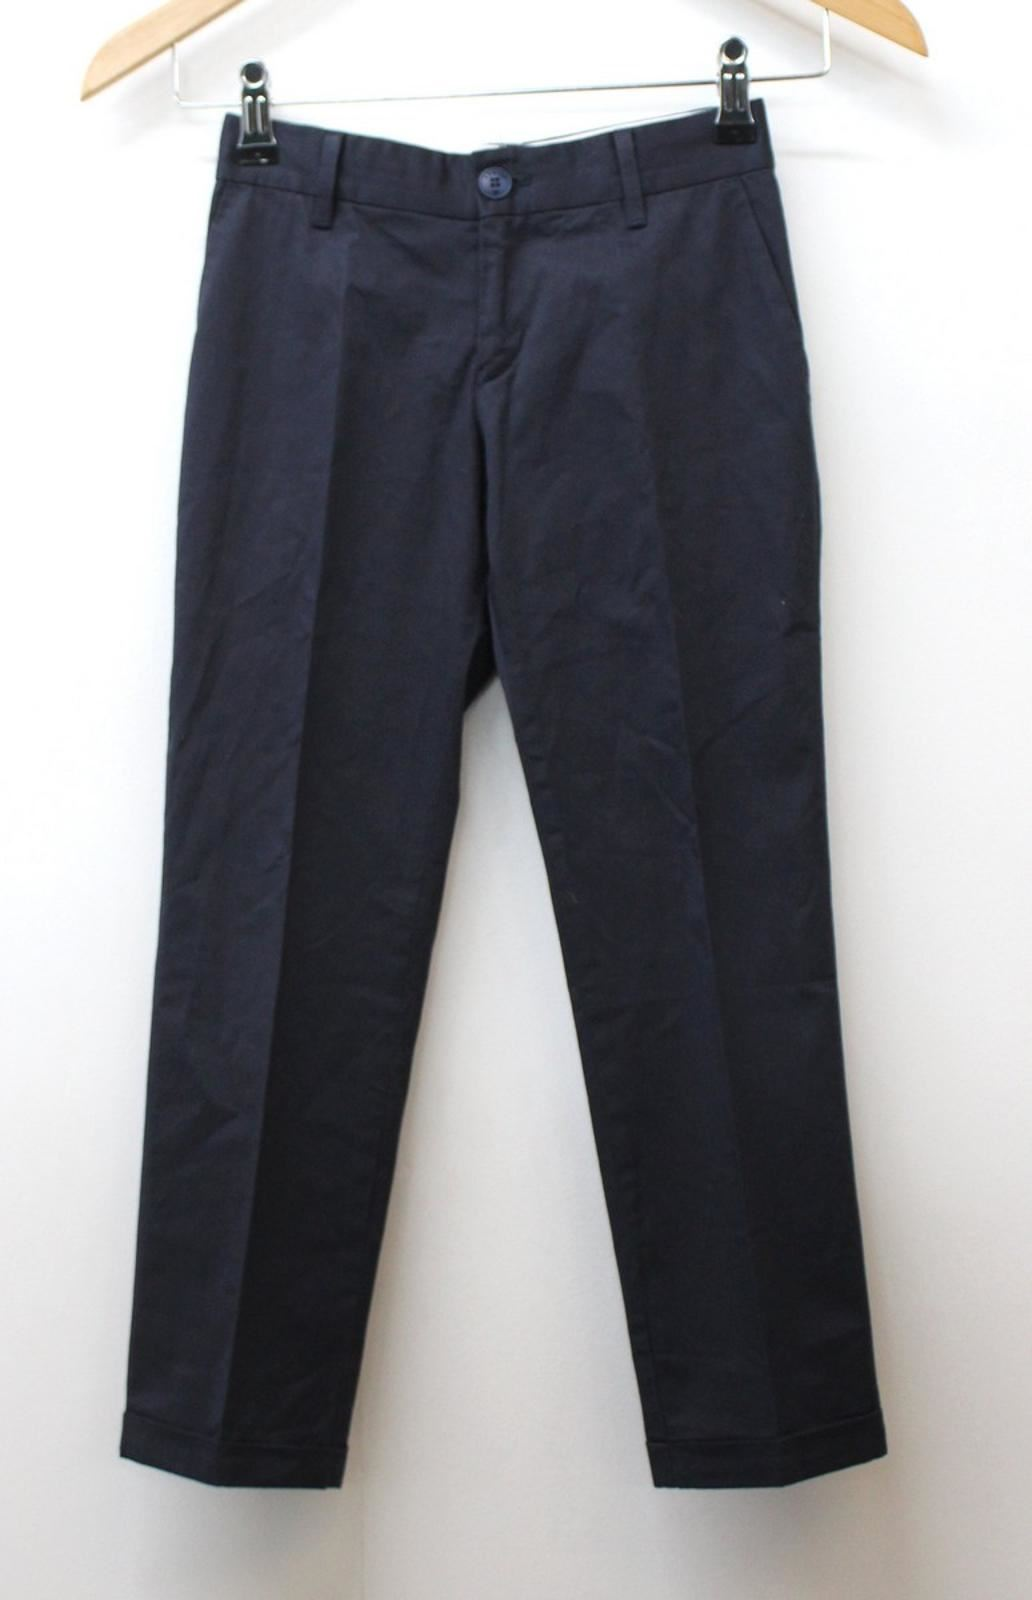 ARMANI Boys Navy Blue Cotton Blend Pleated Front Formal Trousers Size 7 Yrs.